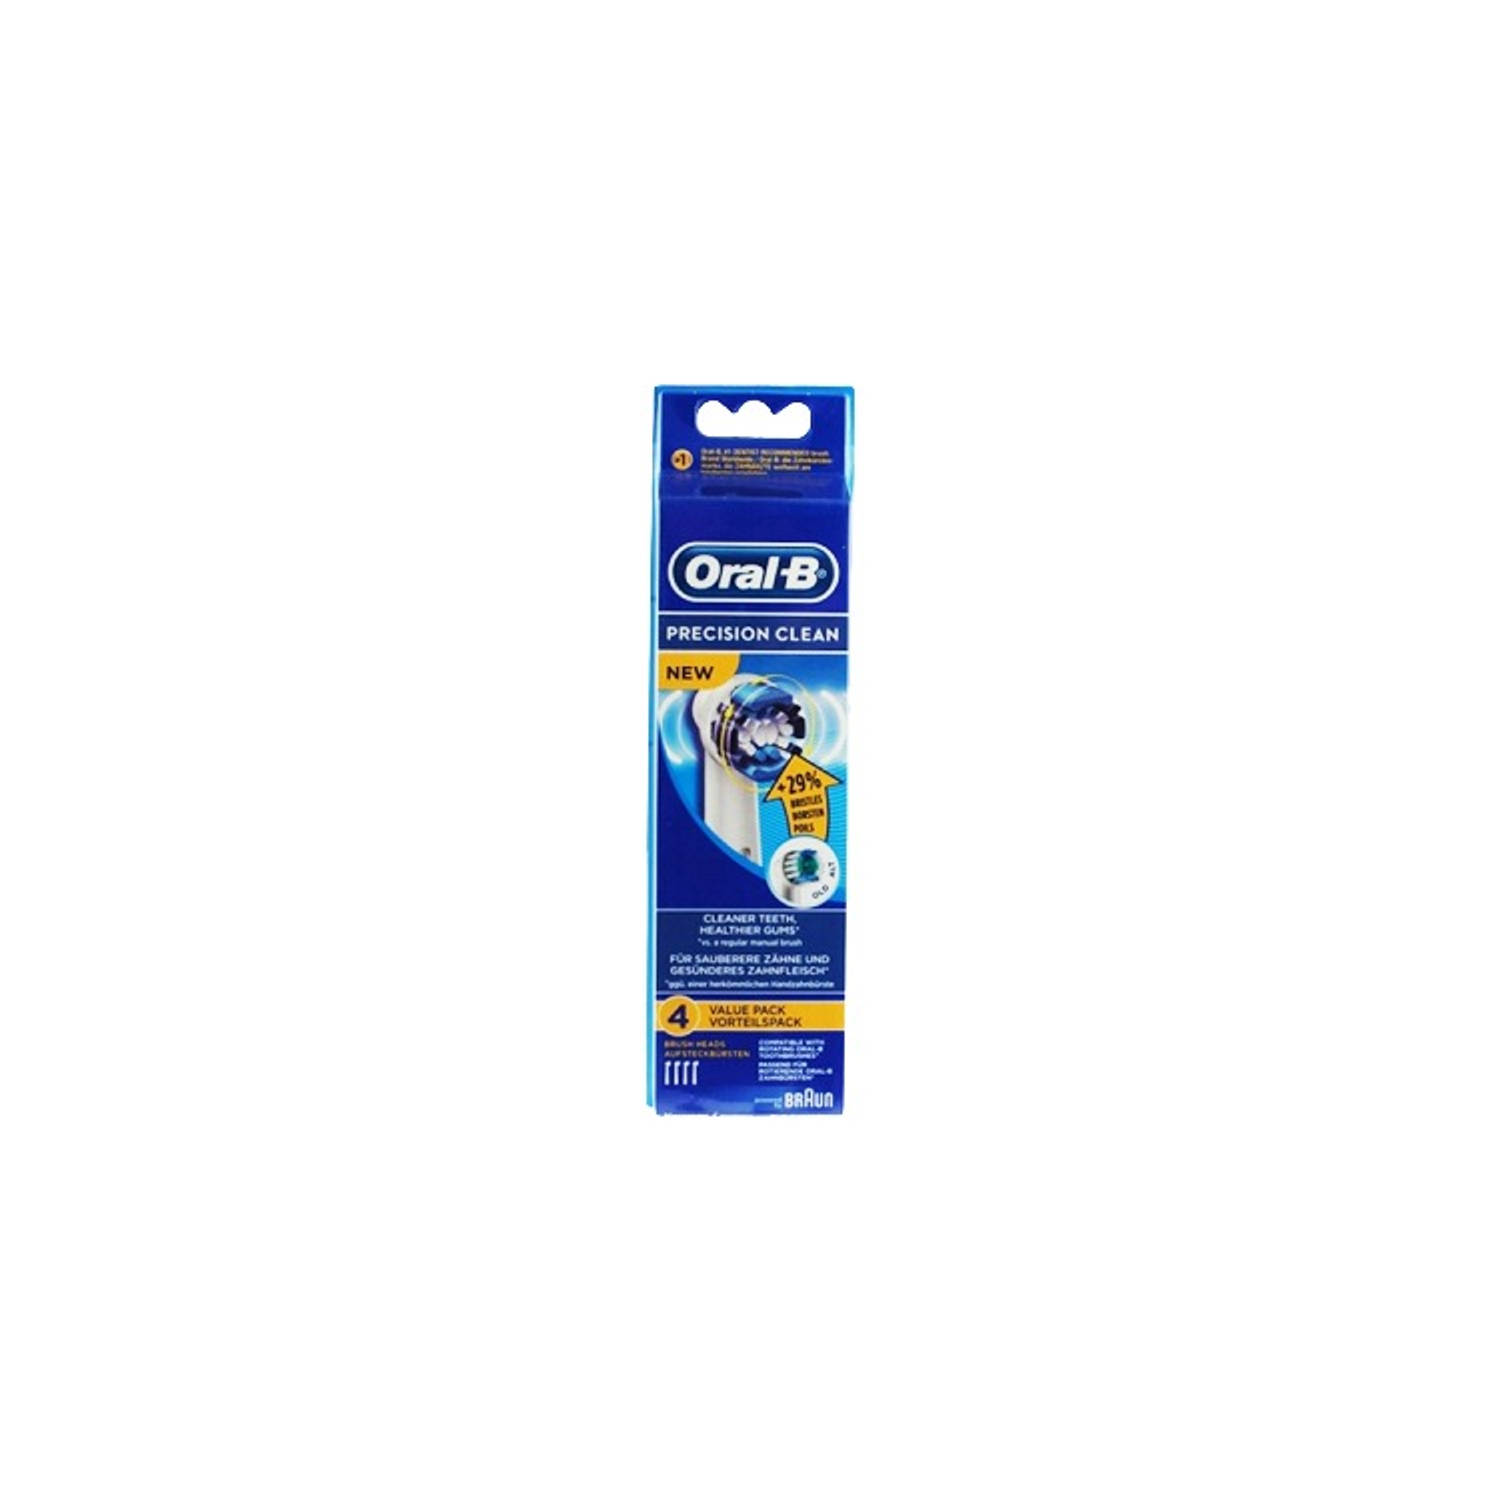 Oral-B Precision Clean opzetborstels - set van 4